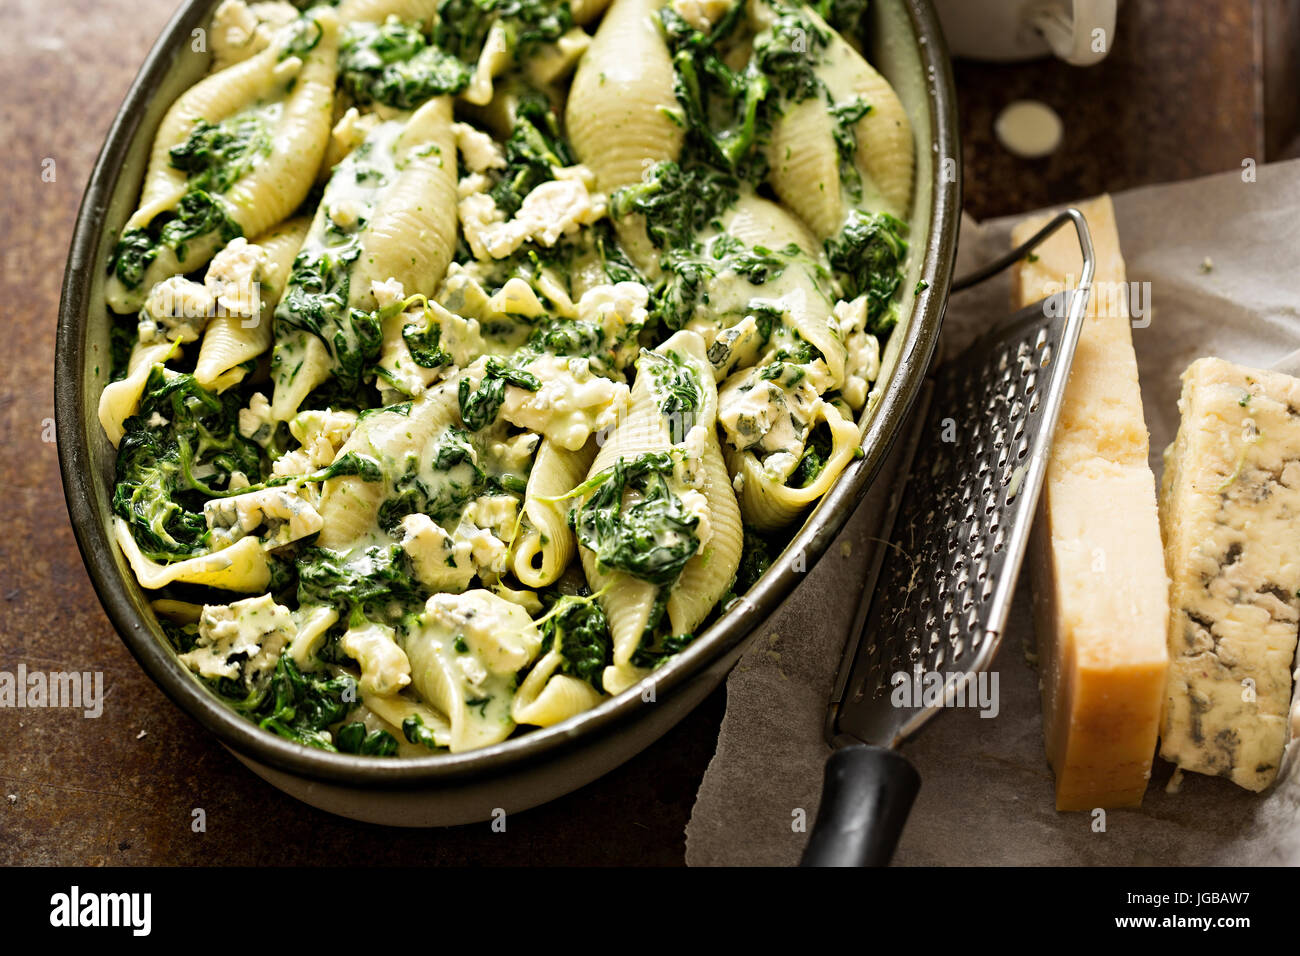 Spinach jumbo seashell pasta with parmesan and blue cheese oven ready bake - Stock Image